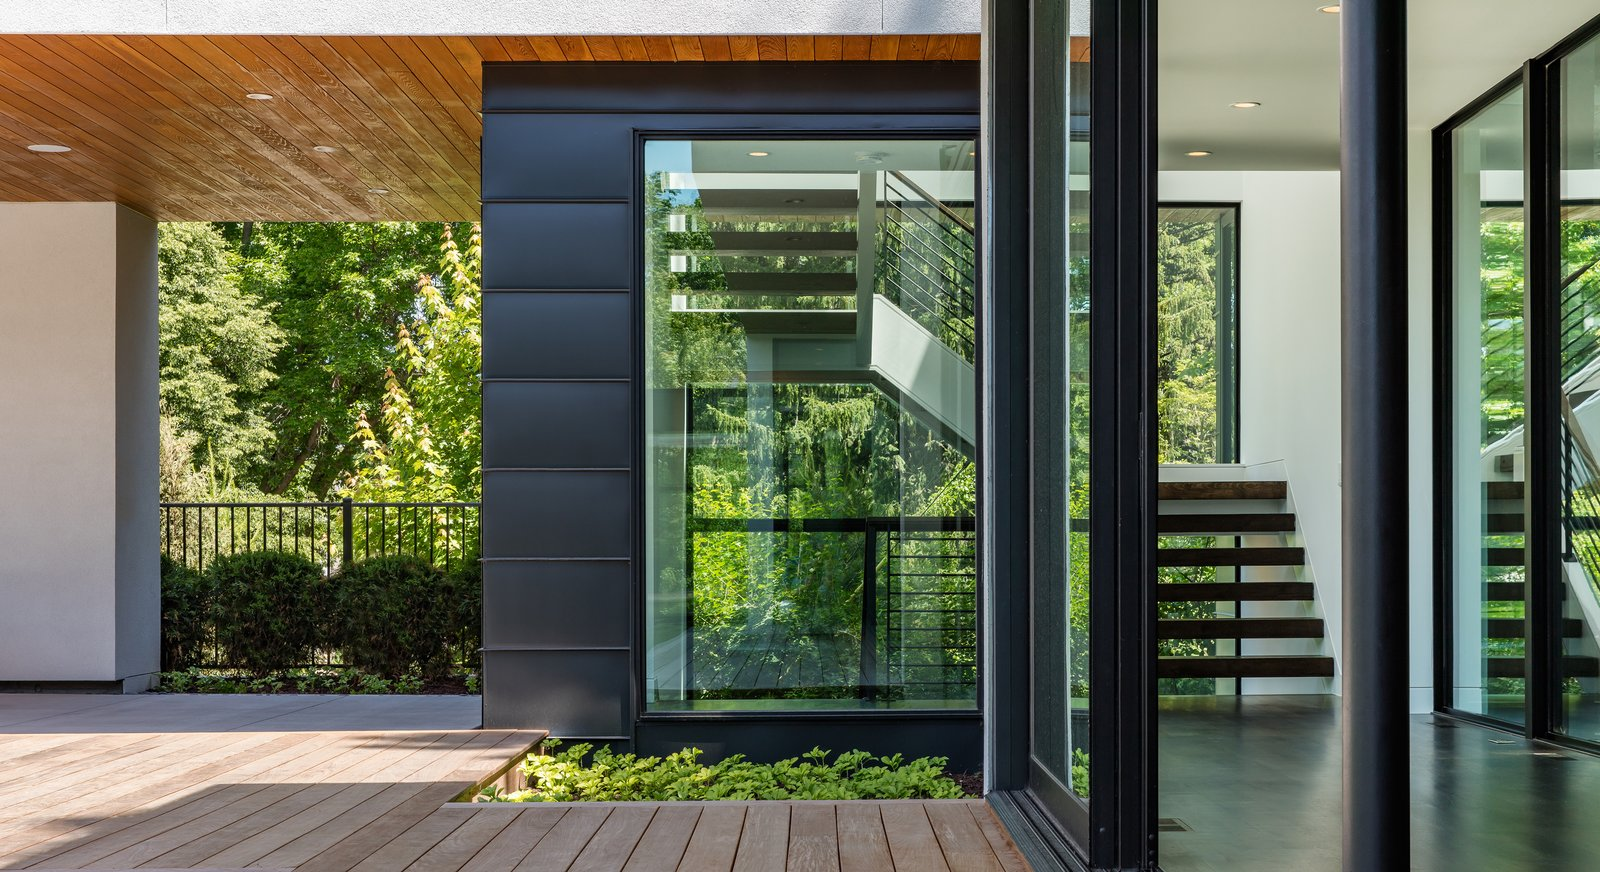 Tagged: Side Yard, Gardens, Walkways, Metal Patio, Porch, Deck, Garden, Wood Patio, Porch, Deck, Metal, Sliding Door Type, Exterior, Windows, and Picture Window Type.  Calhoun Pavilions Residence by Peterssen/Keller Architecture